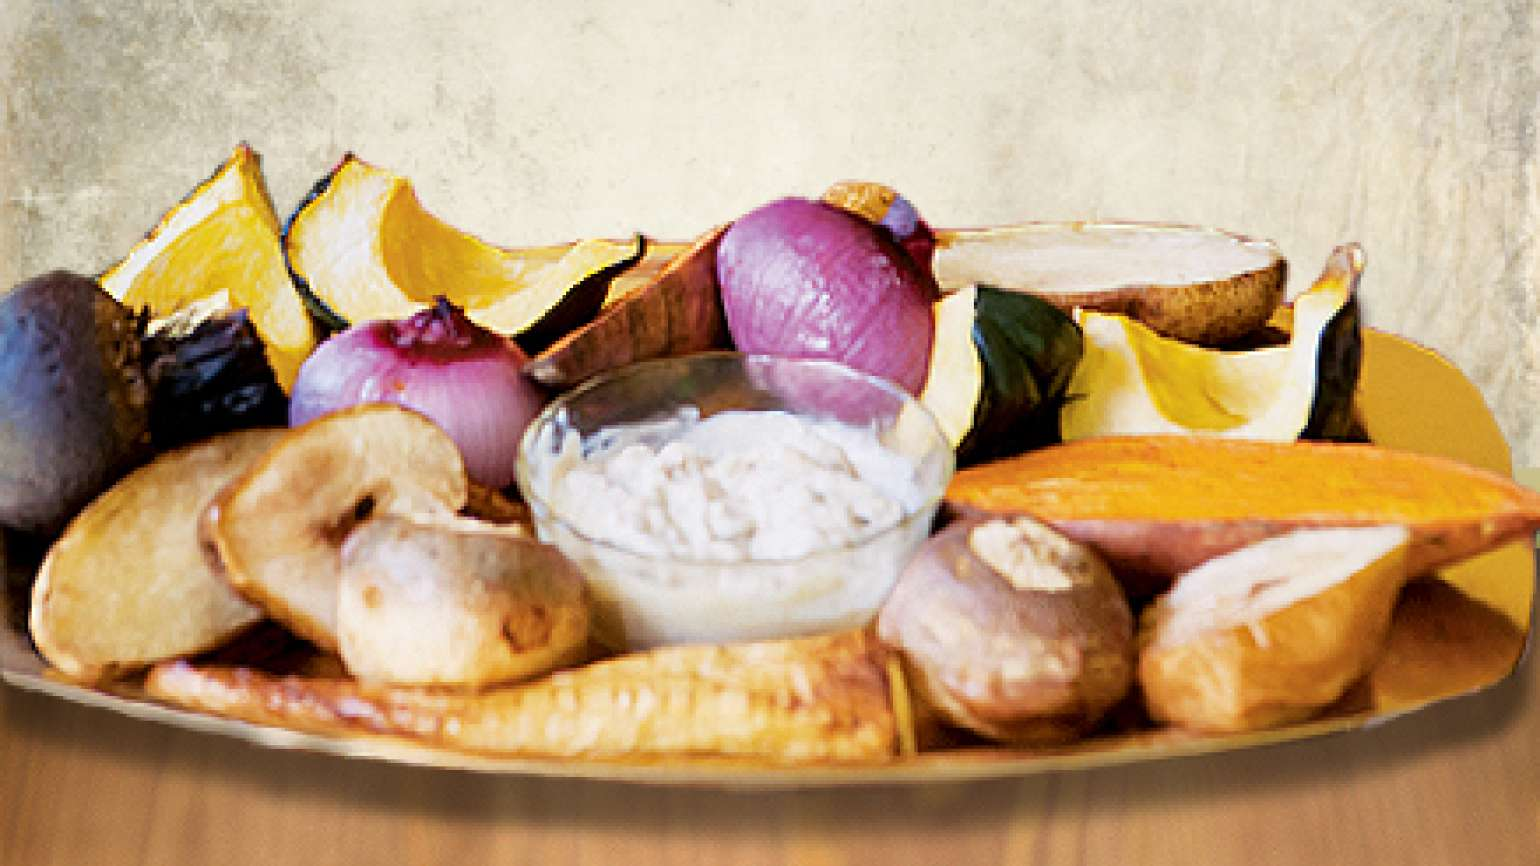 Roasted Vegetables with Garlic Sauce